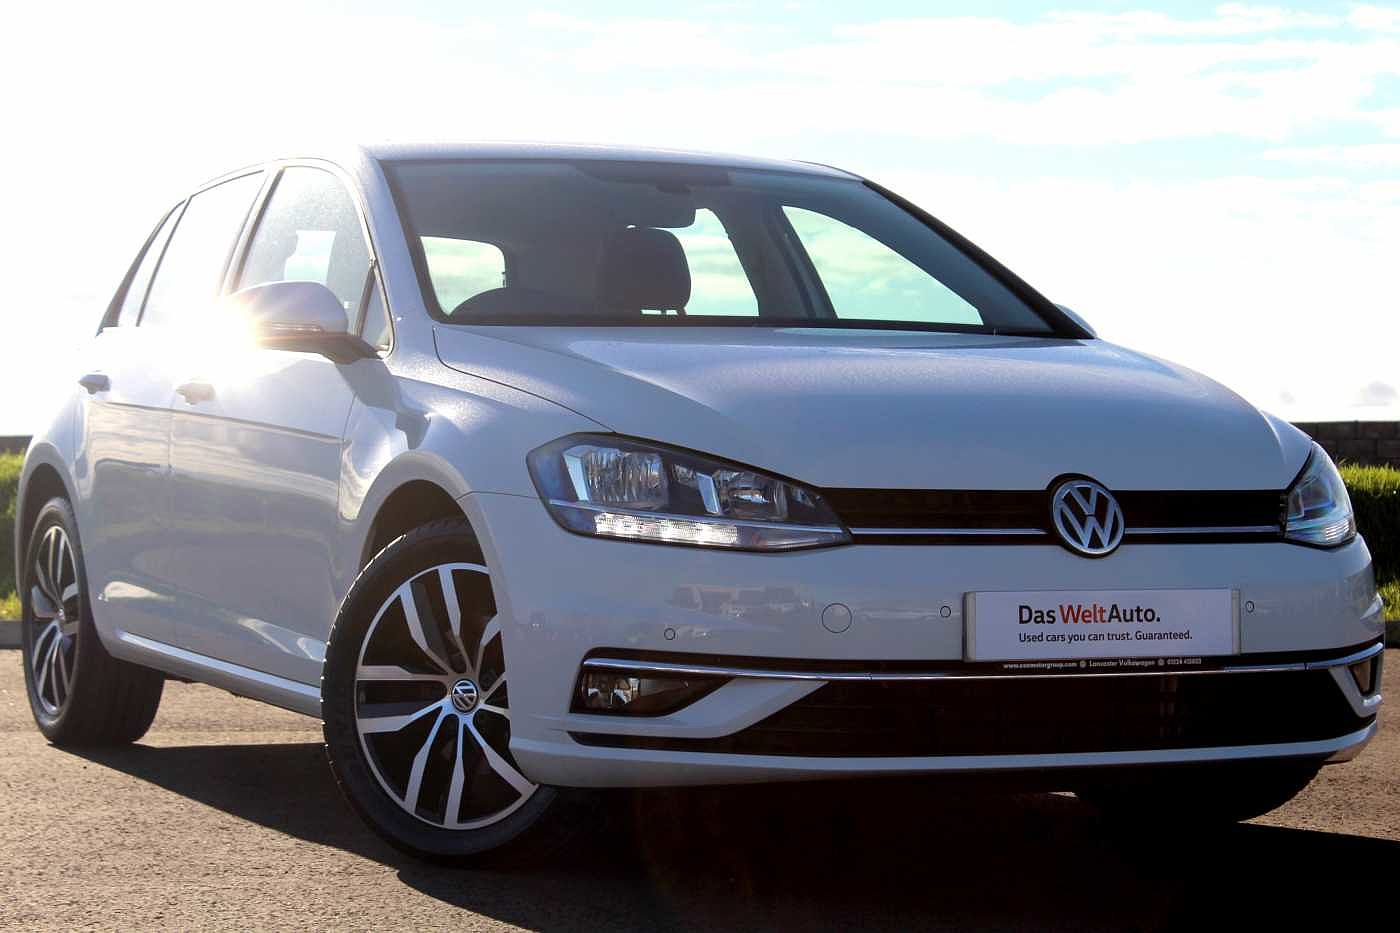 Volkswagen Golf MK7 Facelift 1.6TDI SE Nav 115PS 5dr